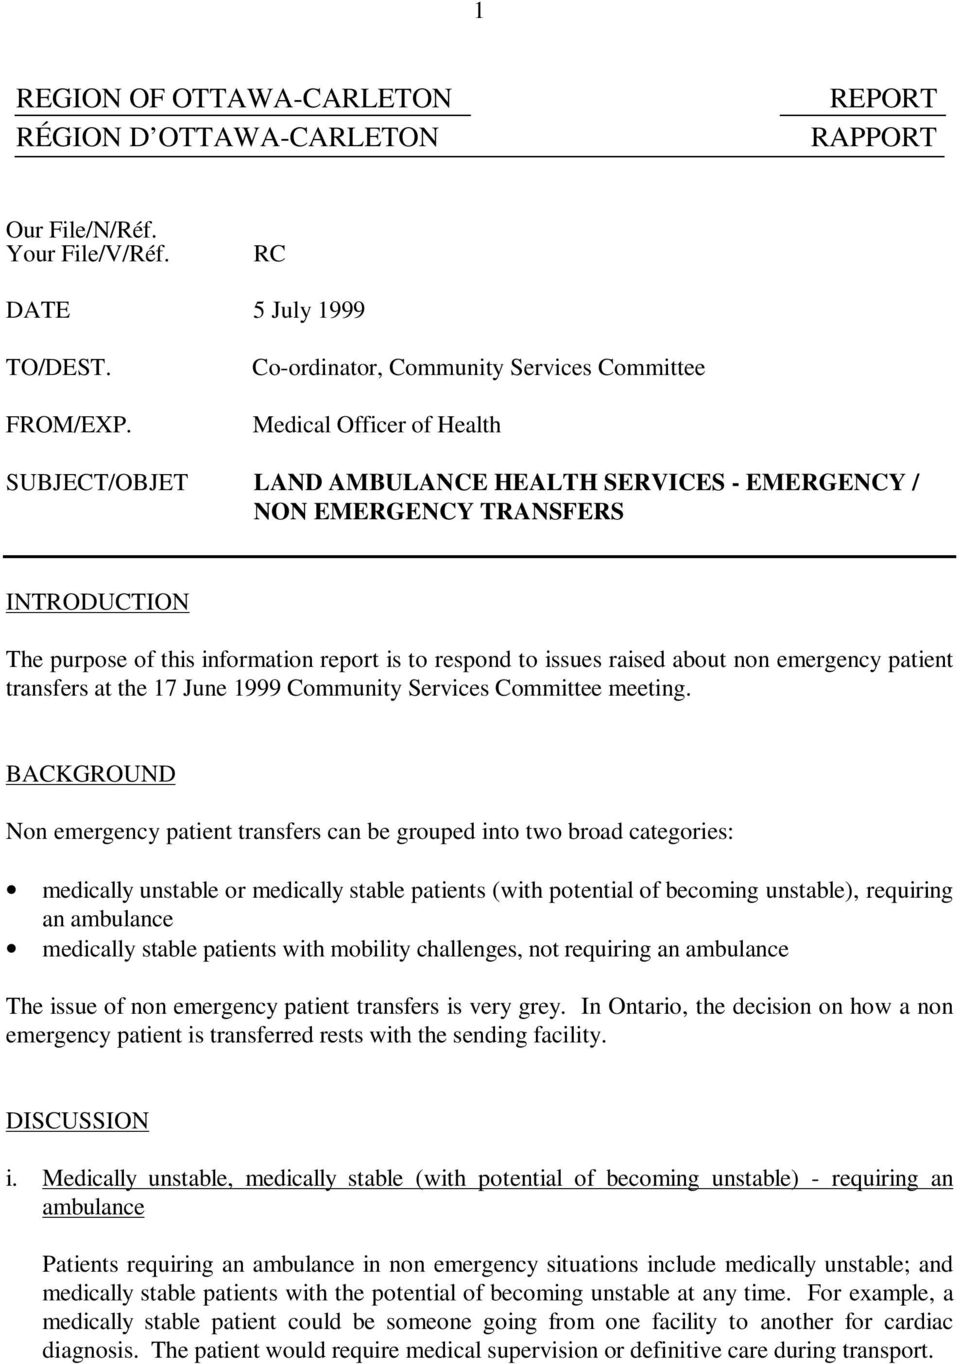 report is to respond to issues raised about non emergency patient transfers at the 17 June 1999 Community Services Committee meeting.